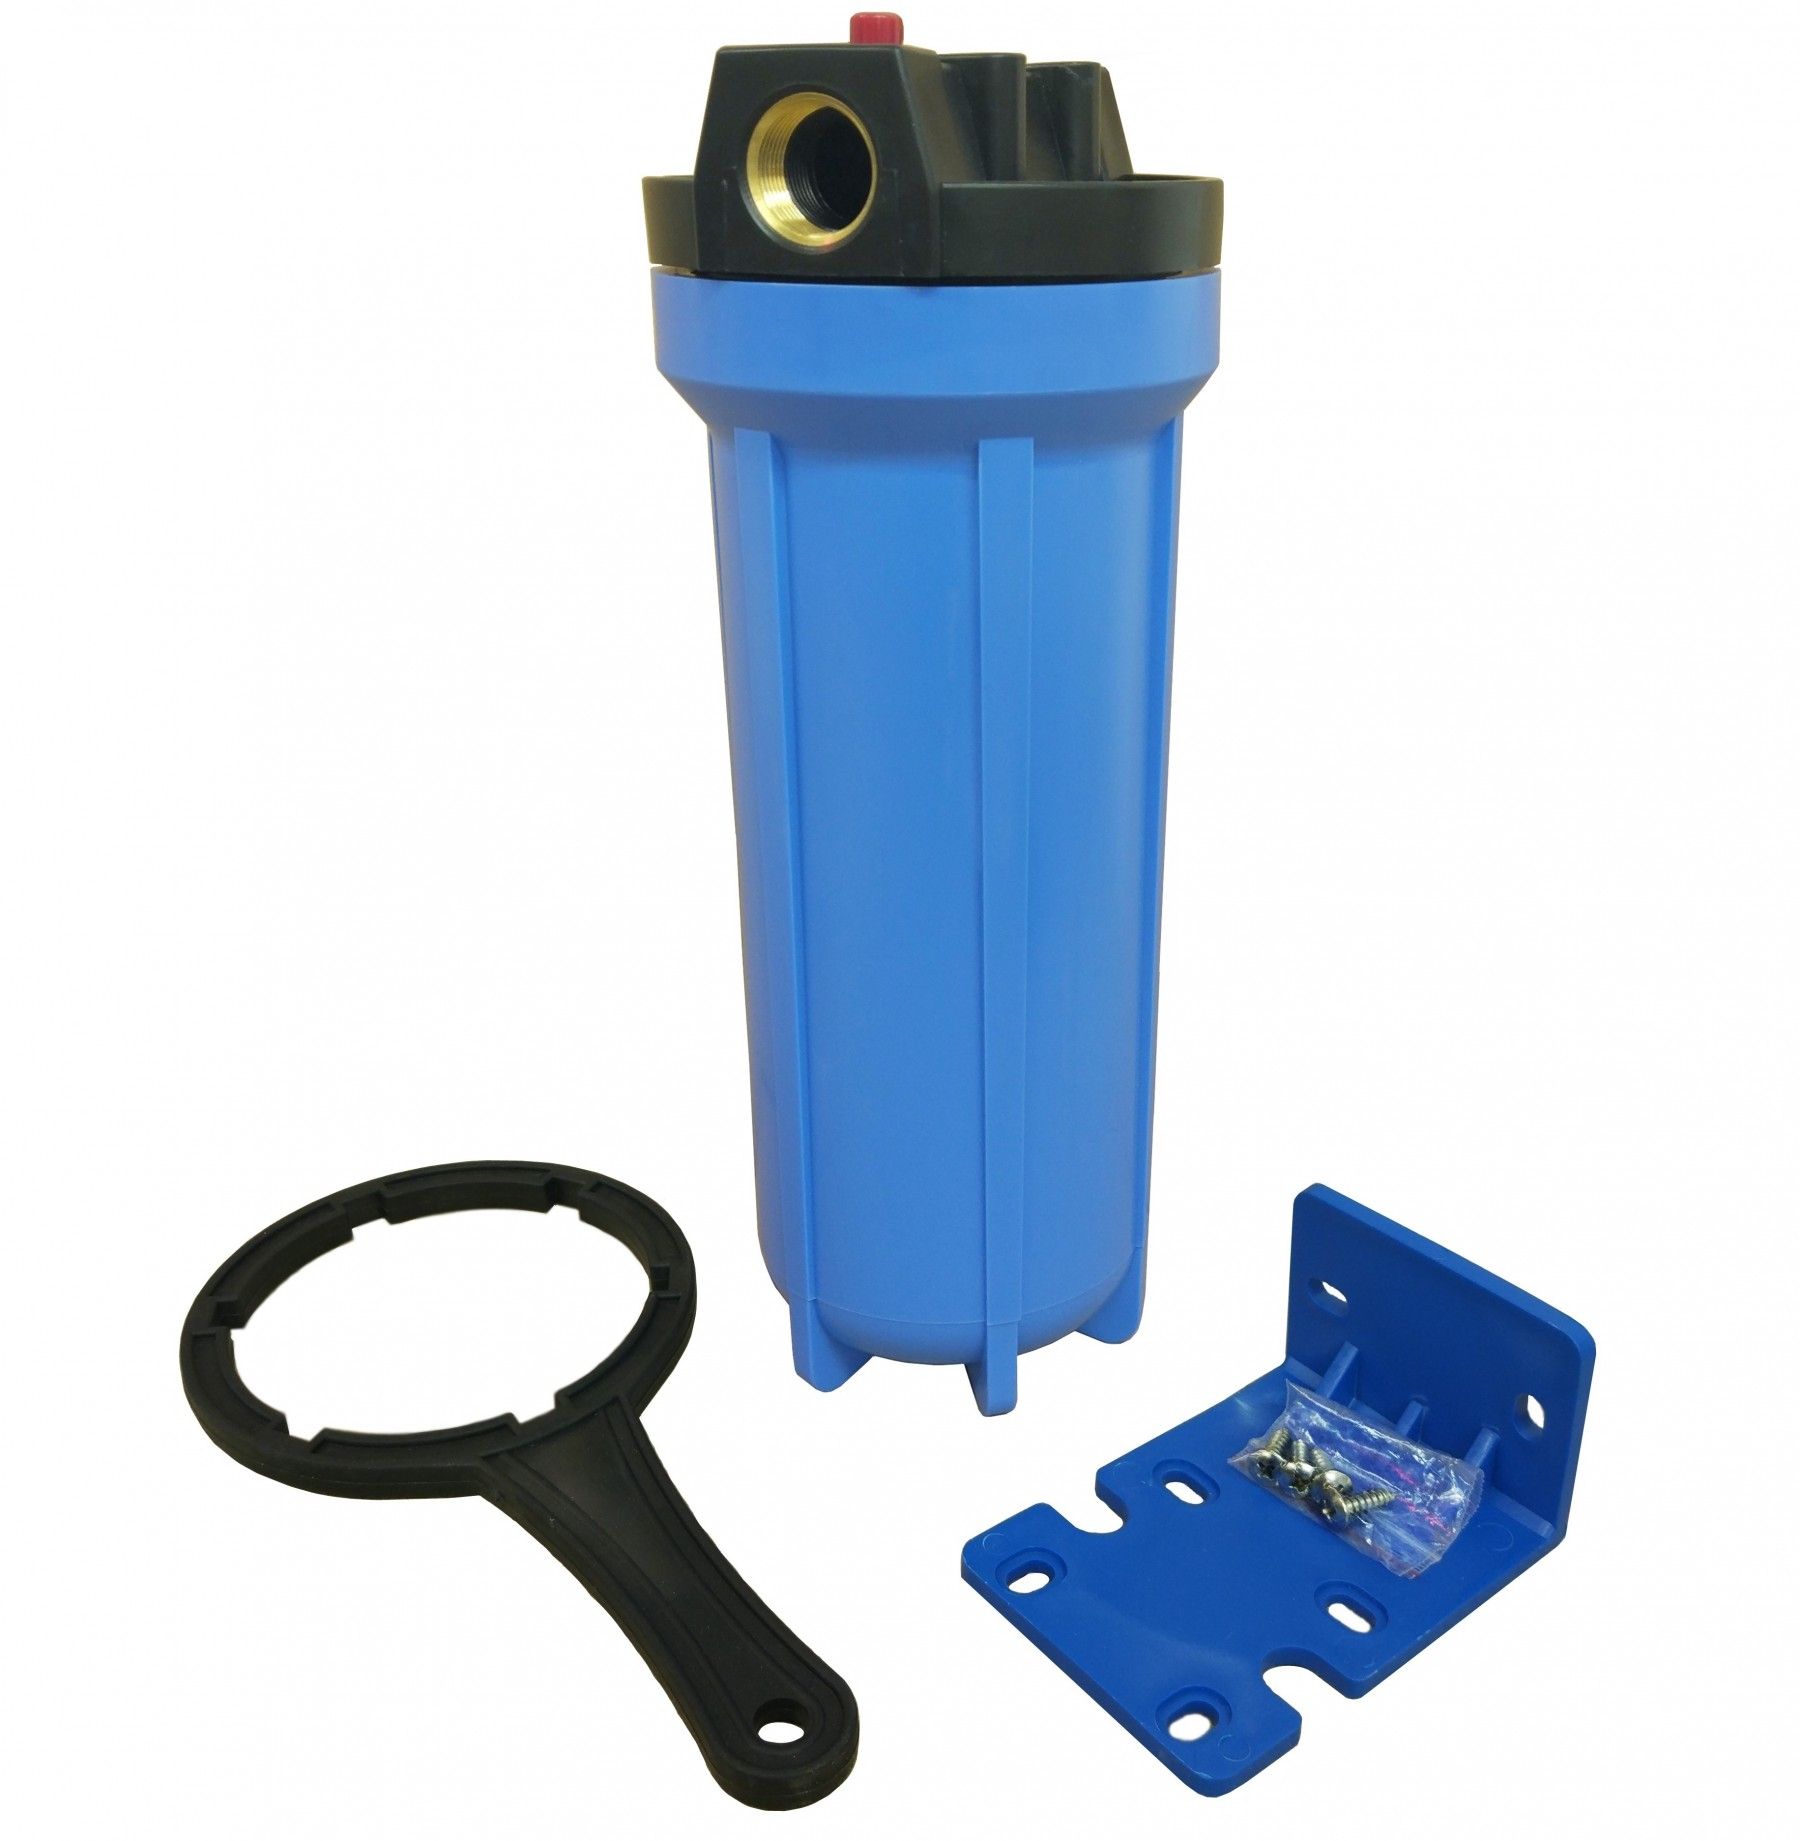 Prevents Limescale Build-up and Removes Existing Scale Finerfilters No Salt//Salt Free Water Softener Alternative 99.6/% Effectiveness Limescale Prevention Systems 10 x 2.5 Standard System